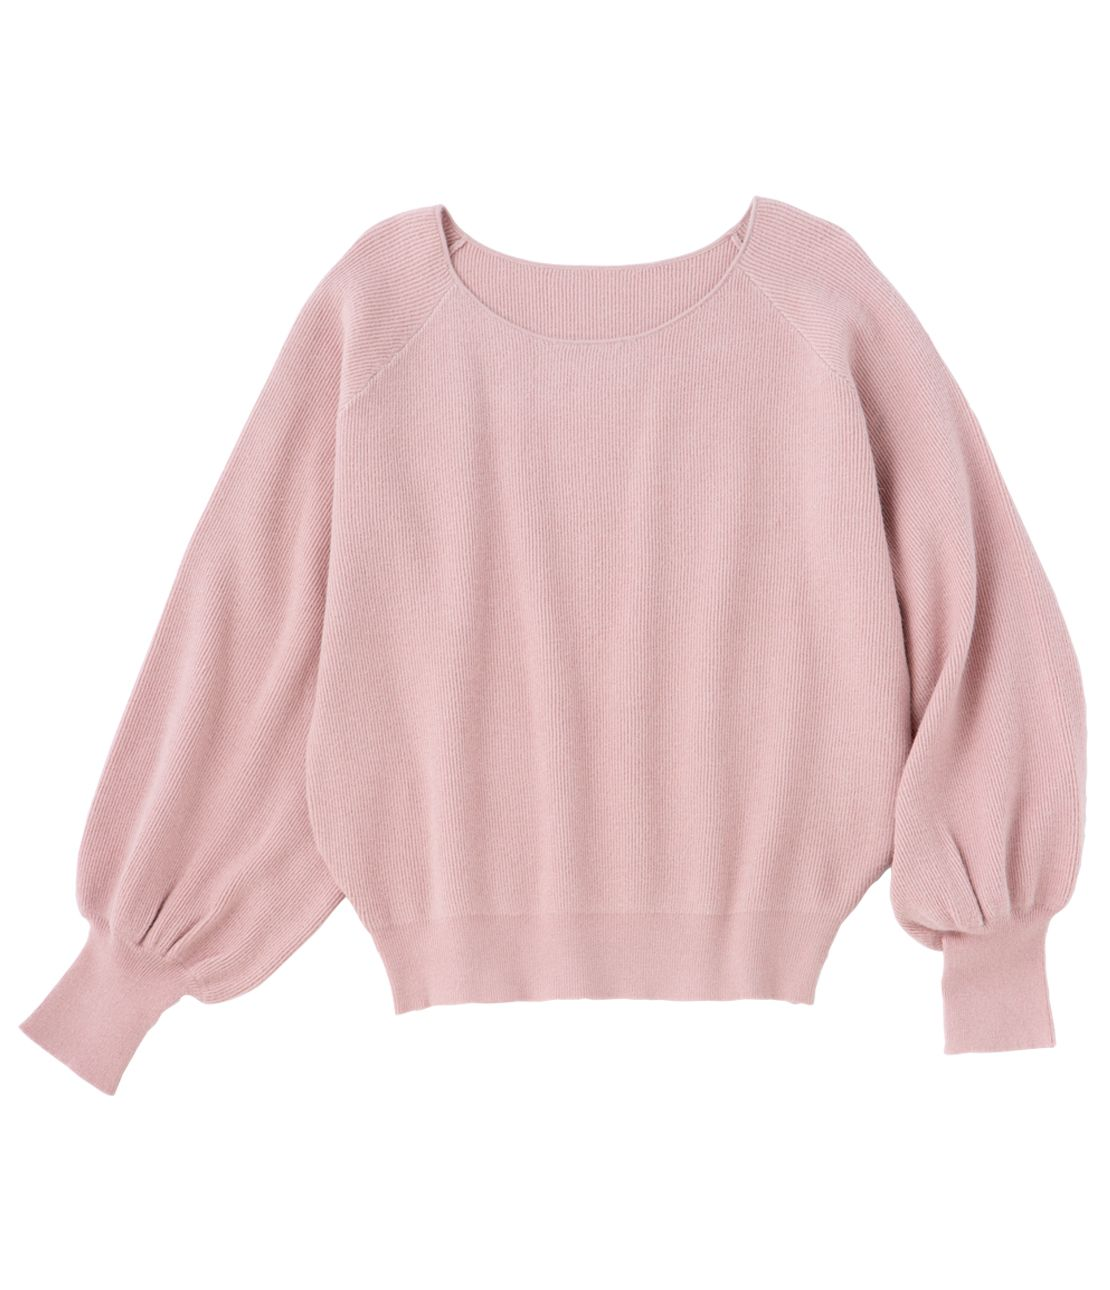 Puff sleeve knit